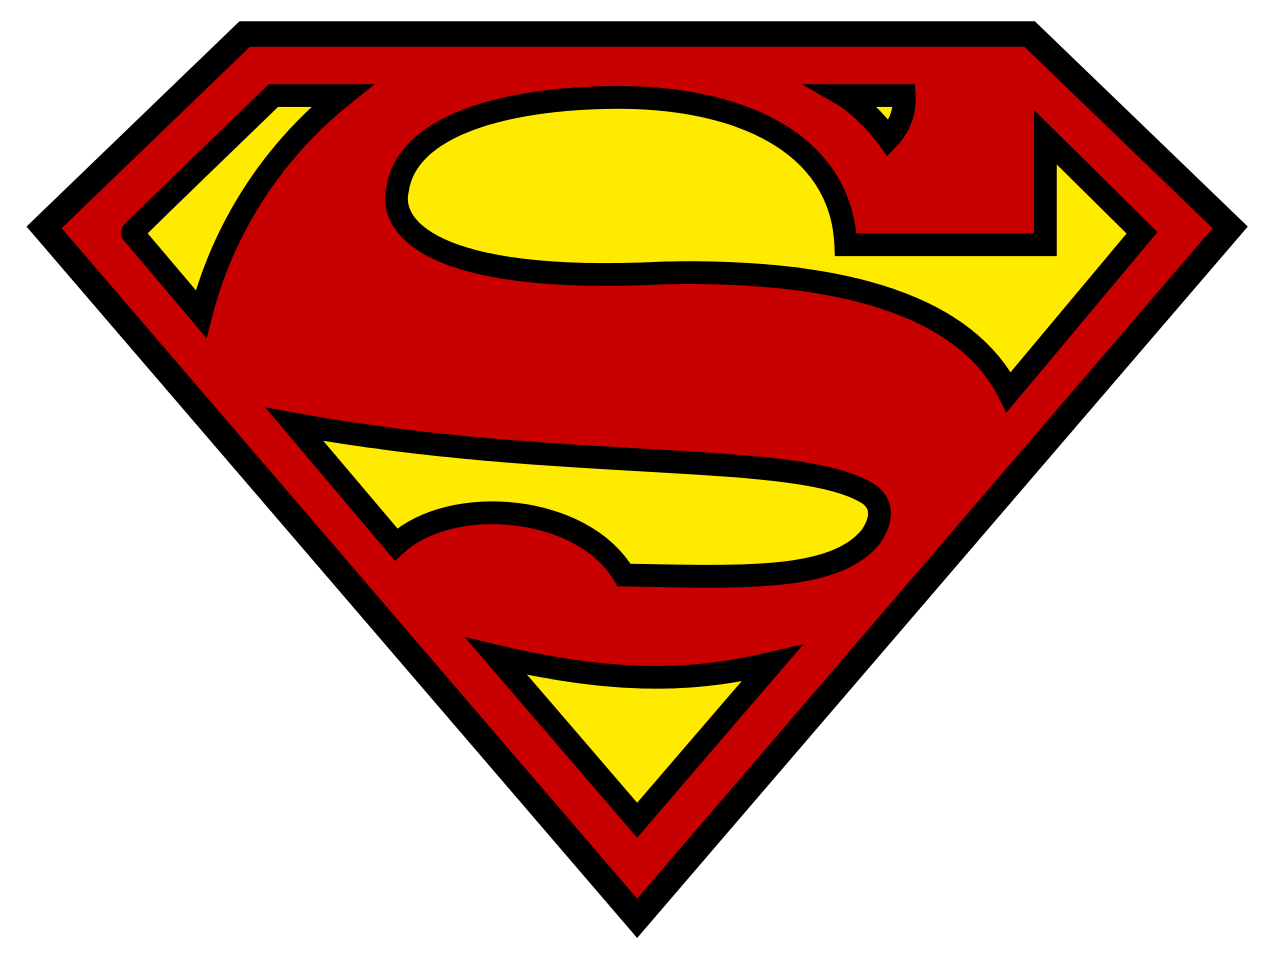 Purim clipart character. Superman logo wallpaper free